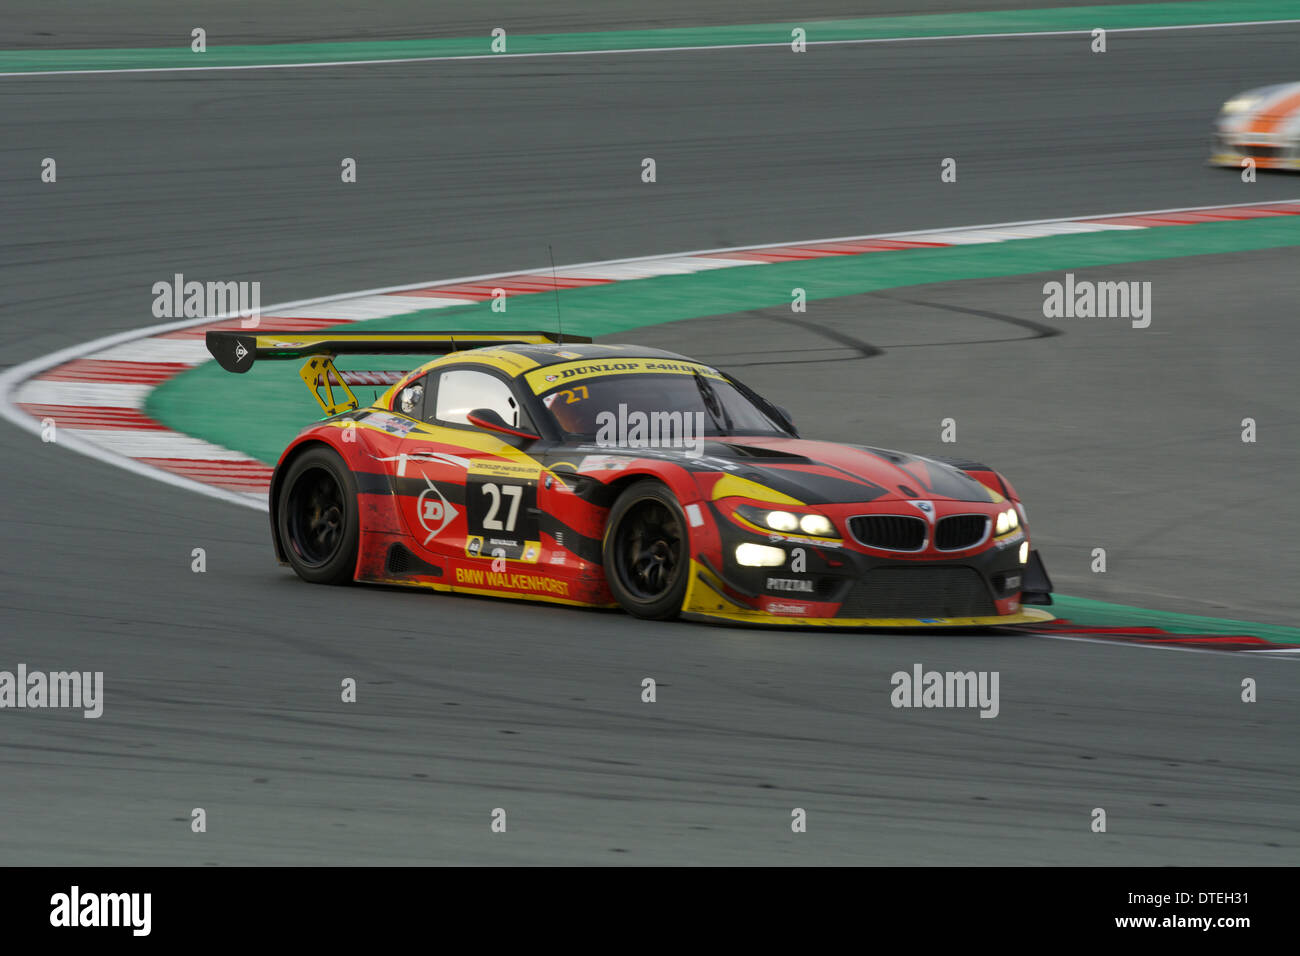 Walkenhorst Motorsport BMW Z4 GT3 car during the Dunlop 24h Dubai endurance car race at Dubai Autodrome - Stock Image